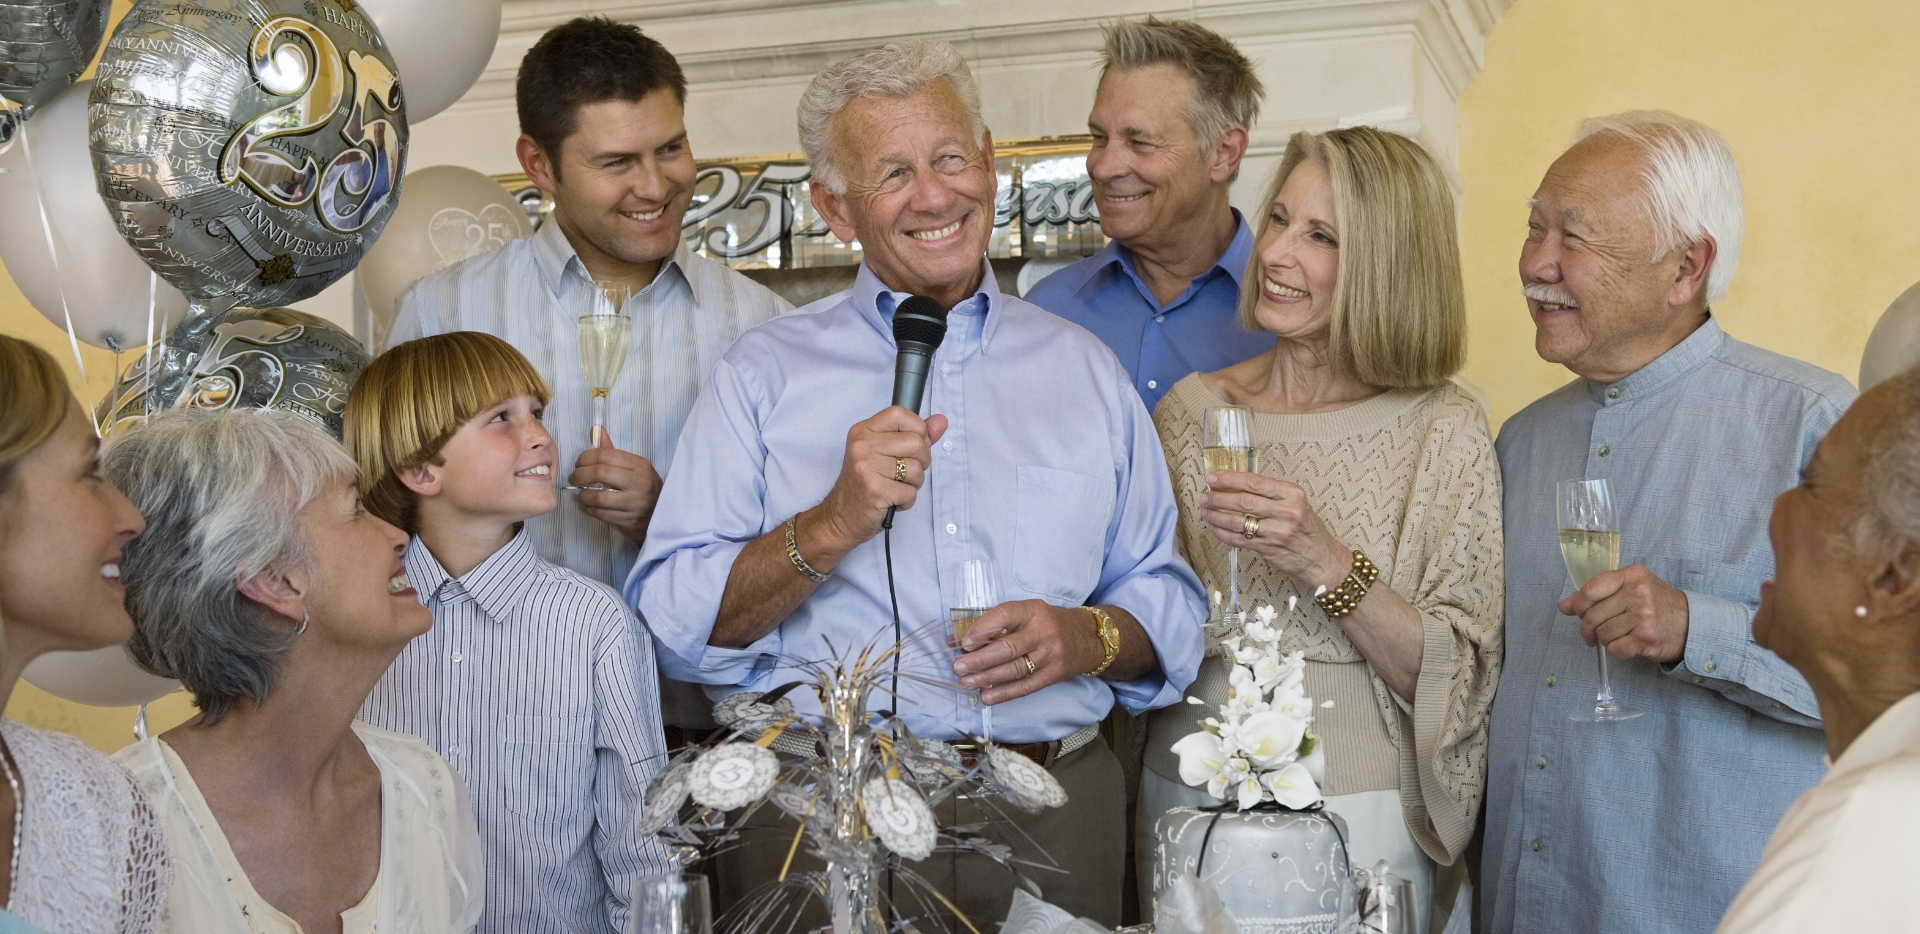 older couple surrounded by friends and family raise glass of champagne to celebrate 25th wedding anniversary